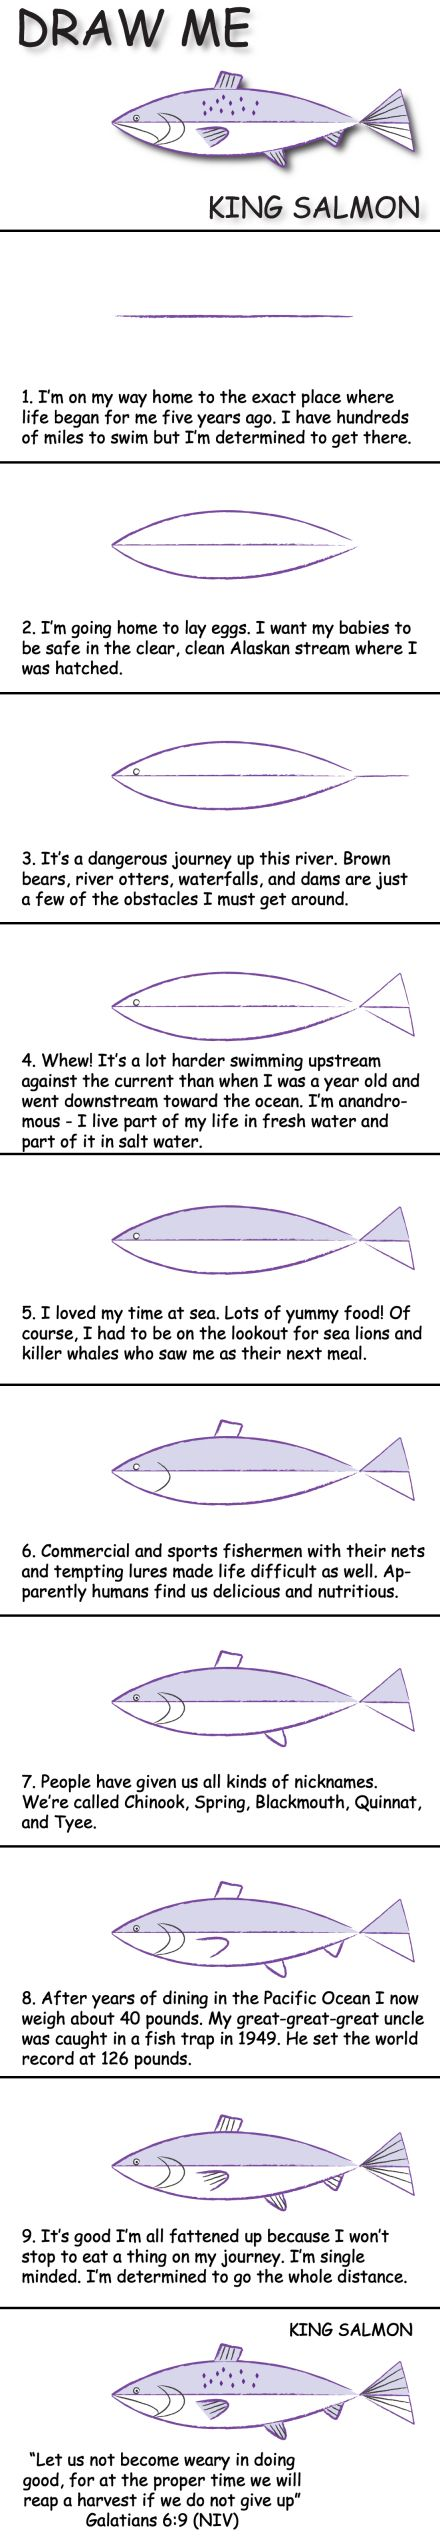 Draw a salmon in 10 easy steps and learn fun facts about its life. © 2013 Marty Nystrom